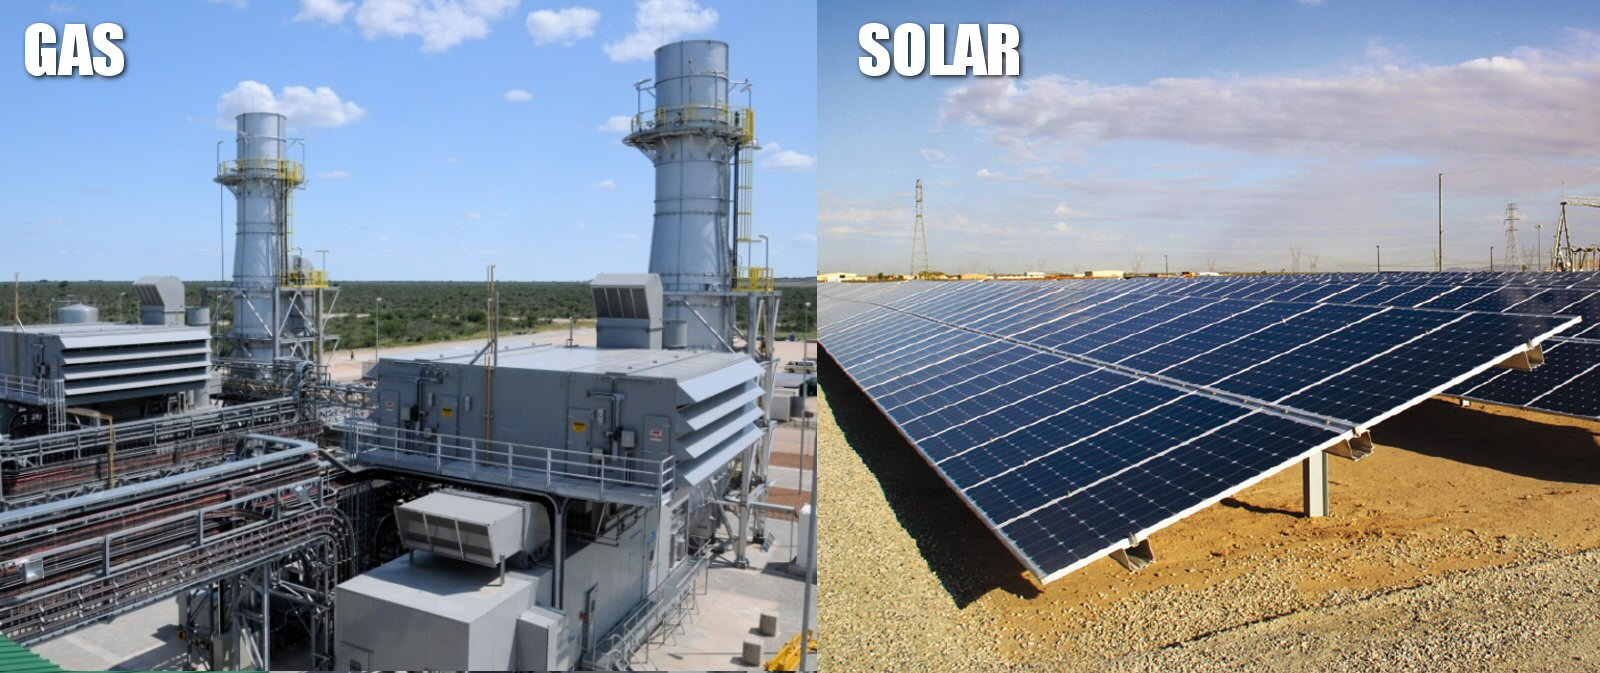 solar energy versus nuclear energy engineering essay Nuclear physicist and nuclear supporter manfred lenzen (2008) found average life-cycle emissions for nuclear energy, based on mining high-grade uranium ore, of 60 grams of co 2 per kilowatt-hour (g/kwh), for wind of 10-20 g/kwh and for natural gas 500-600 g/kwh.